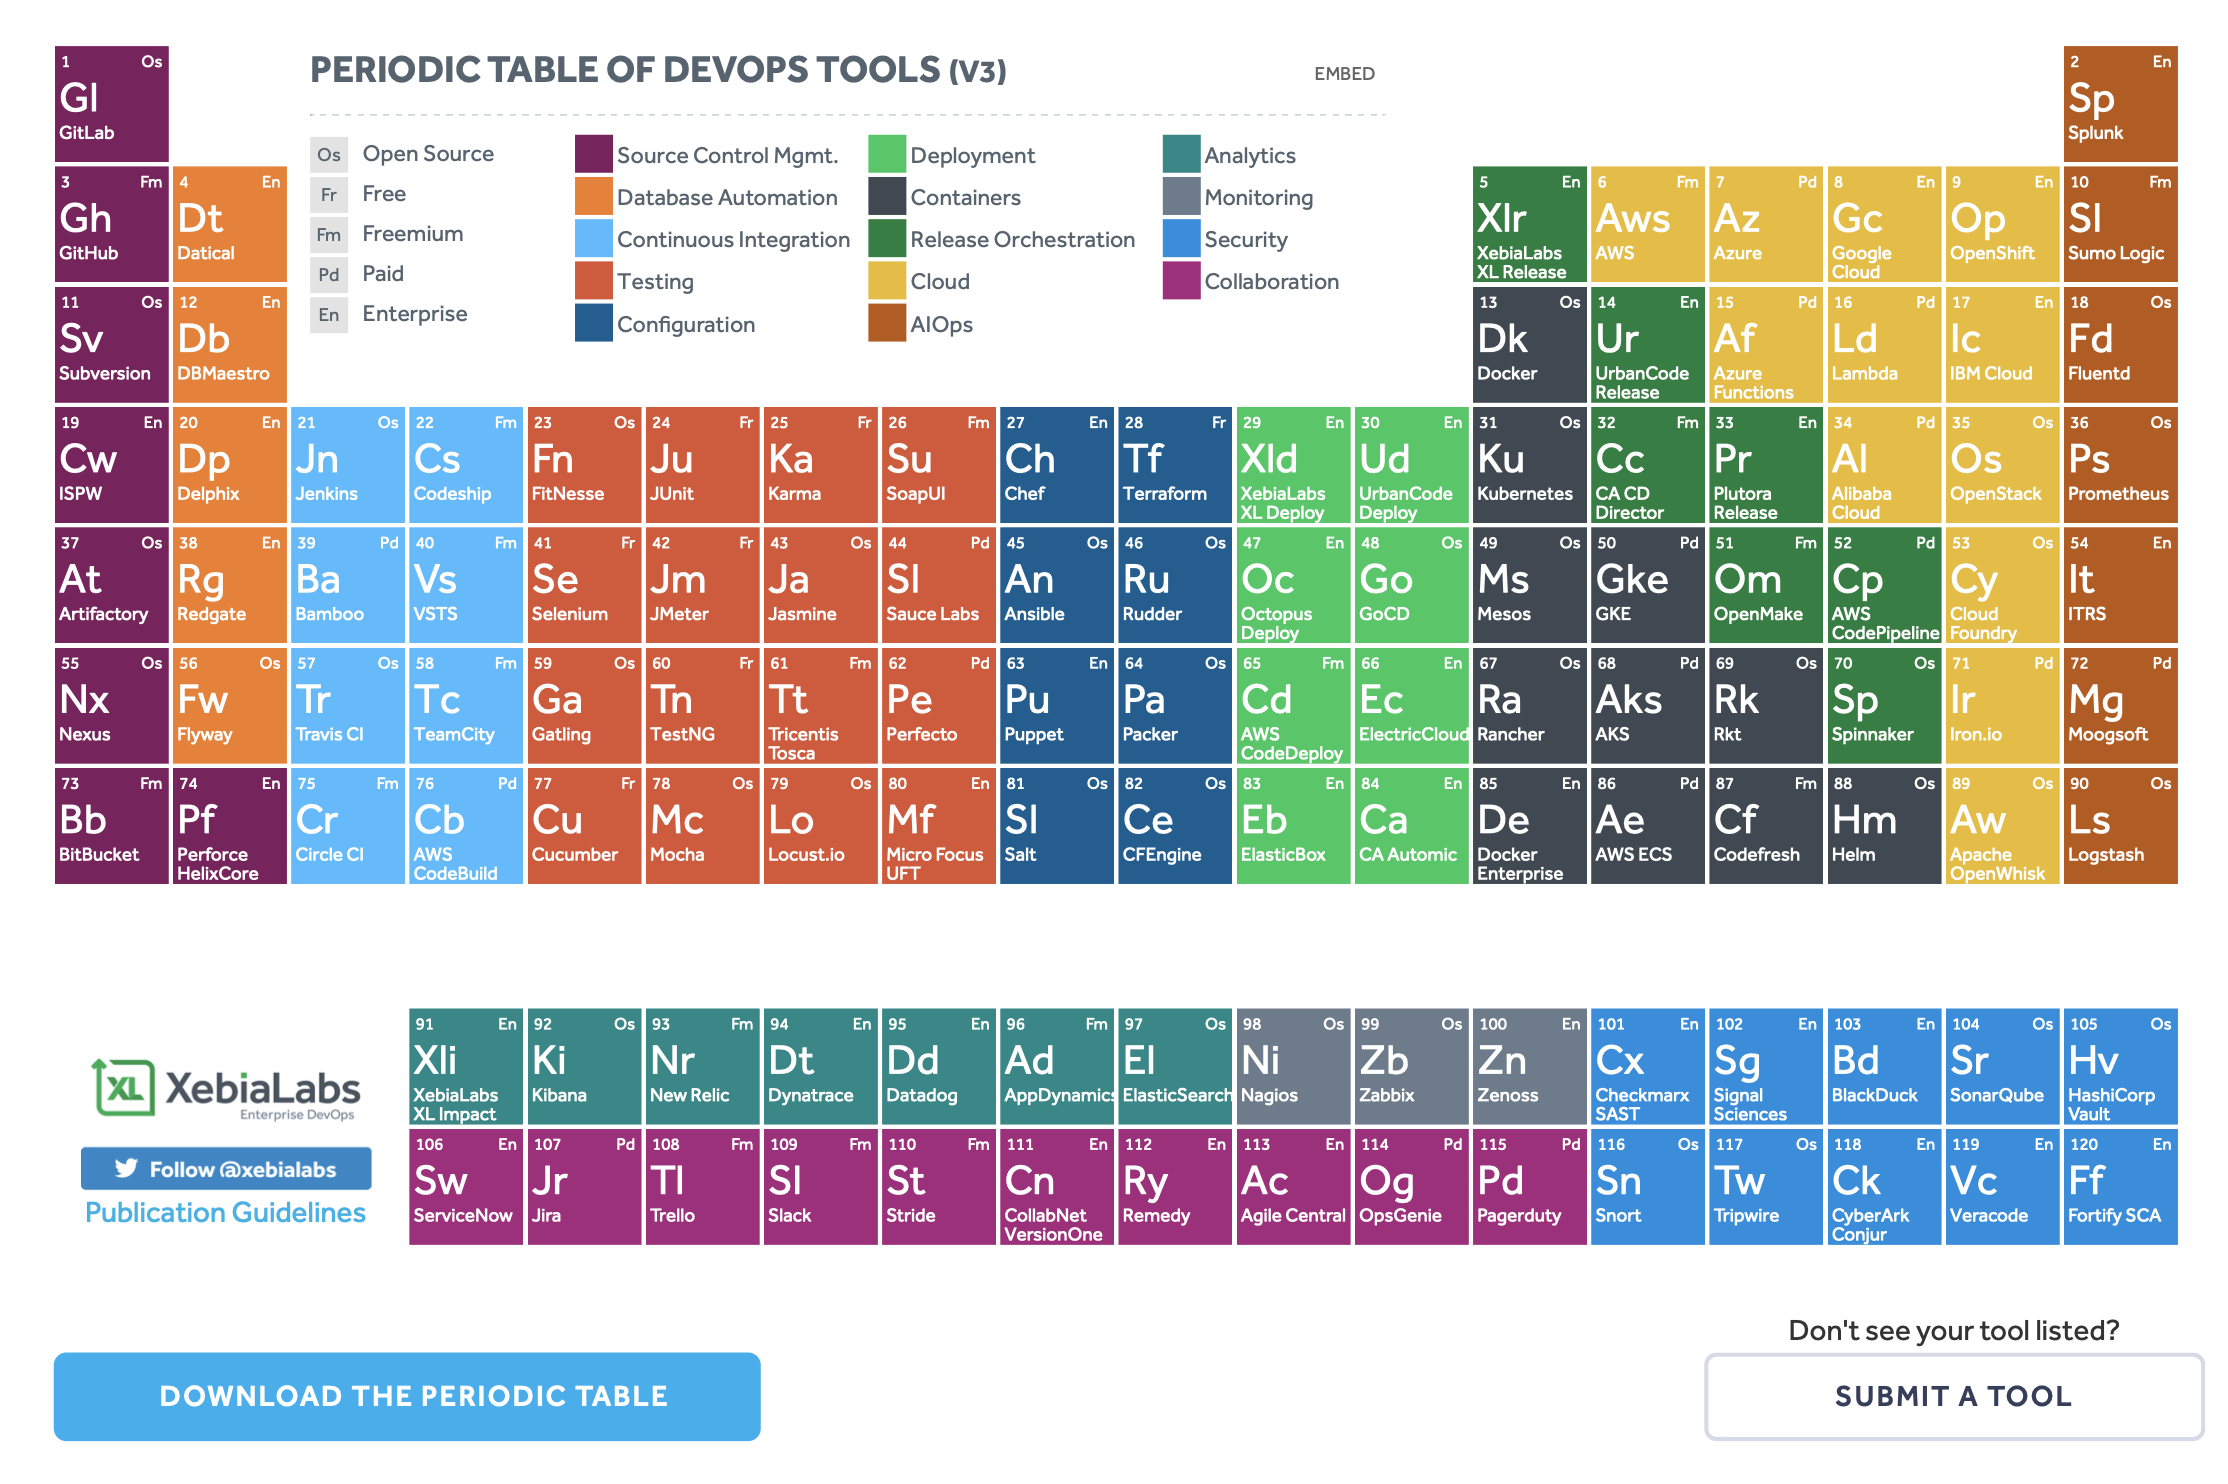 PERIODIC TABLE OF DEVOPS TOOLS (V3)